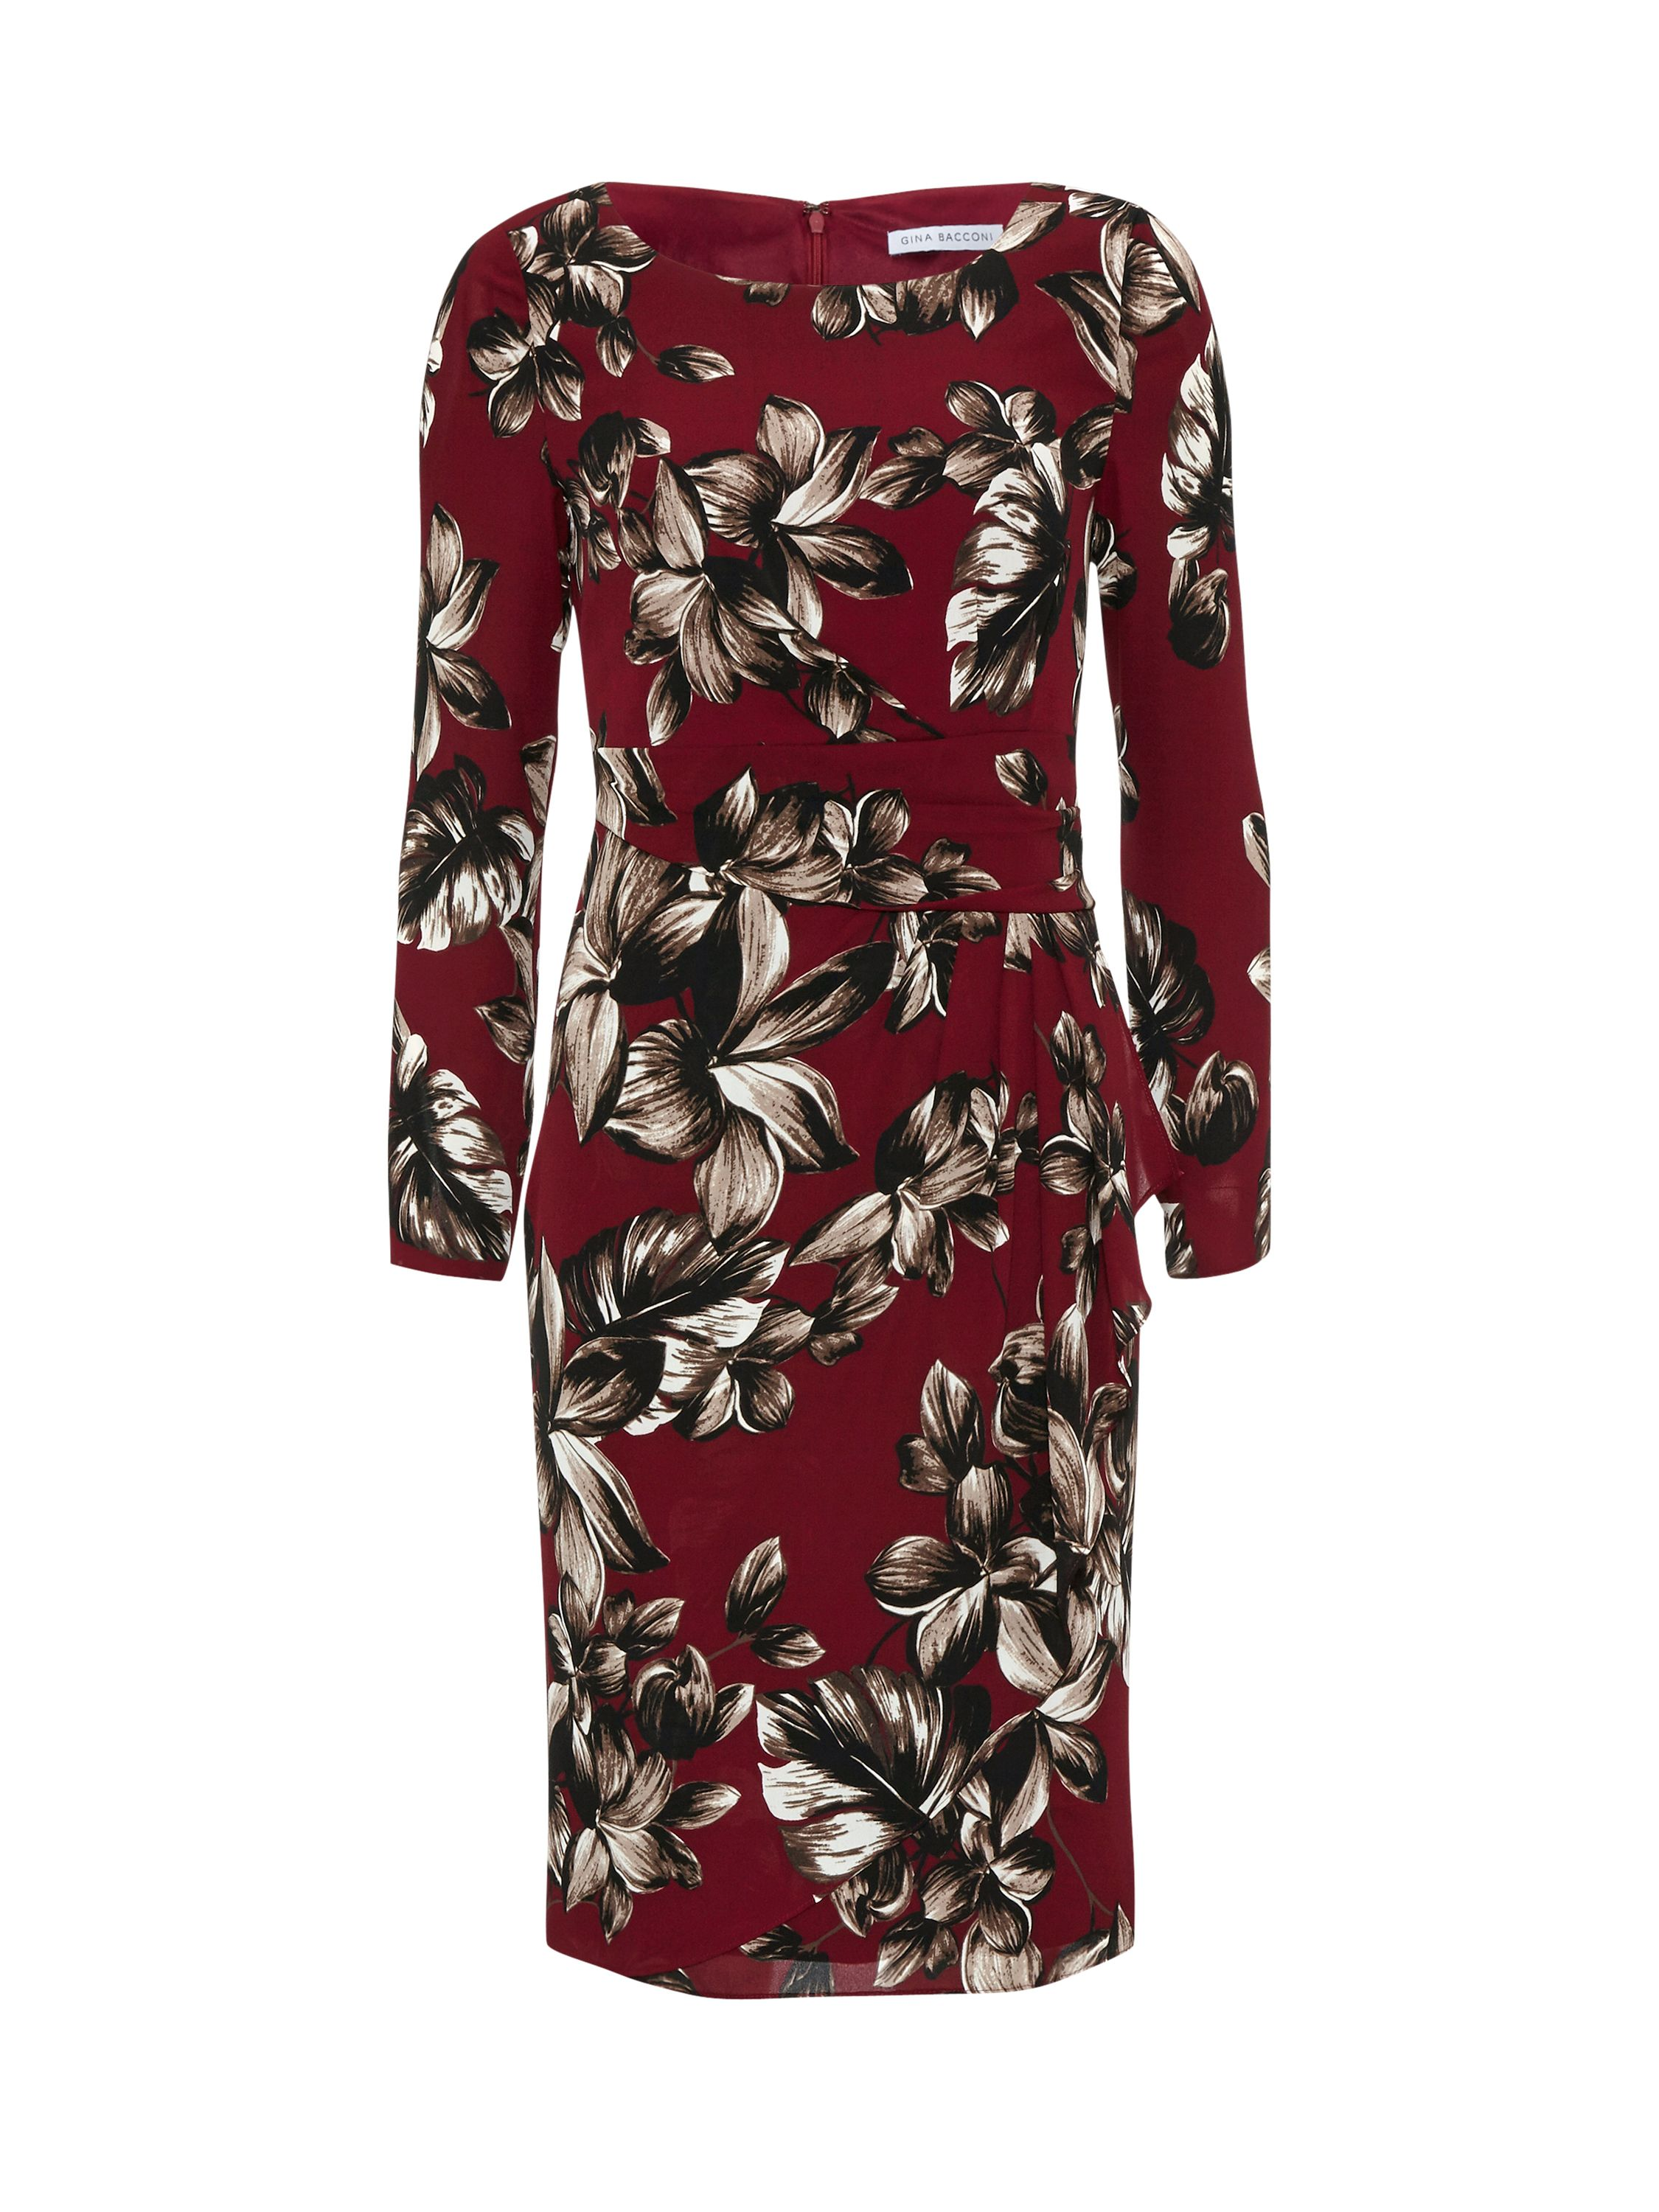 Gina Bacconi Etched floral crepe georgette dress, Red